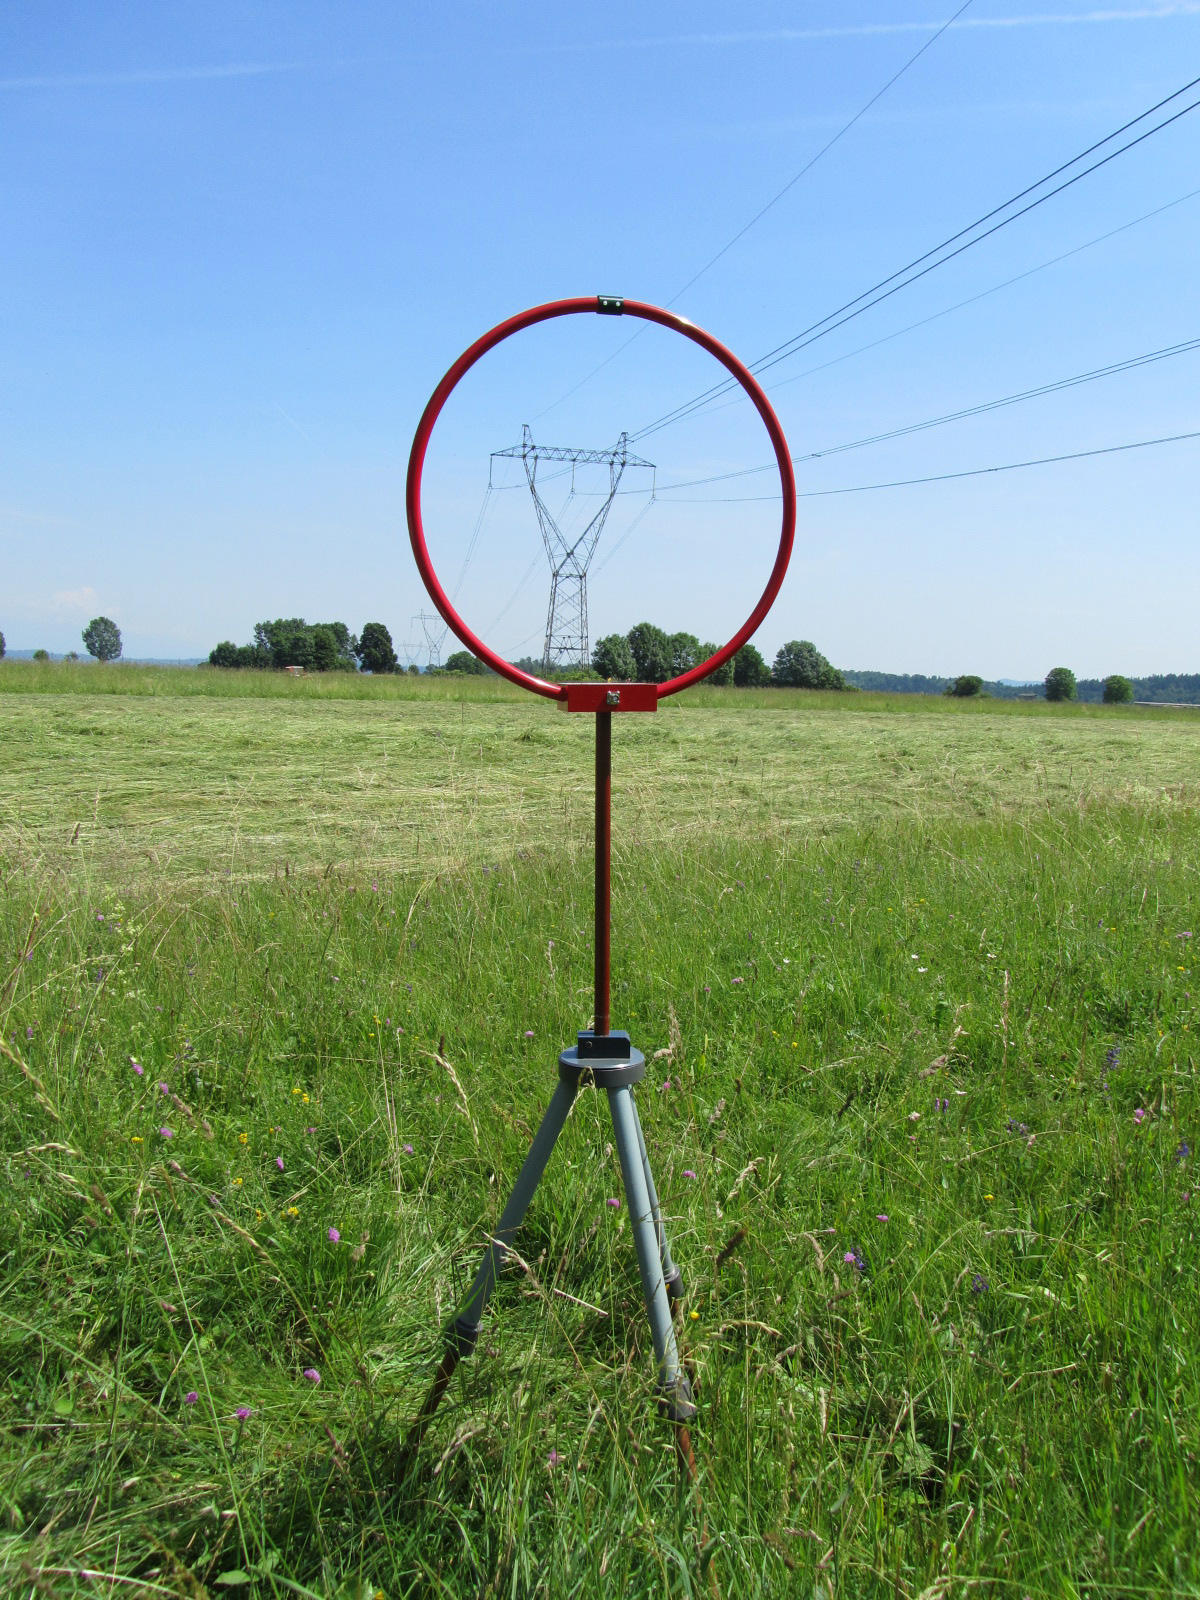 Measurements of radio frequency disturbances of the overhead line